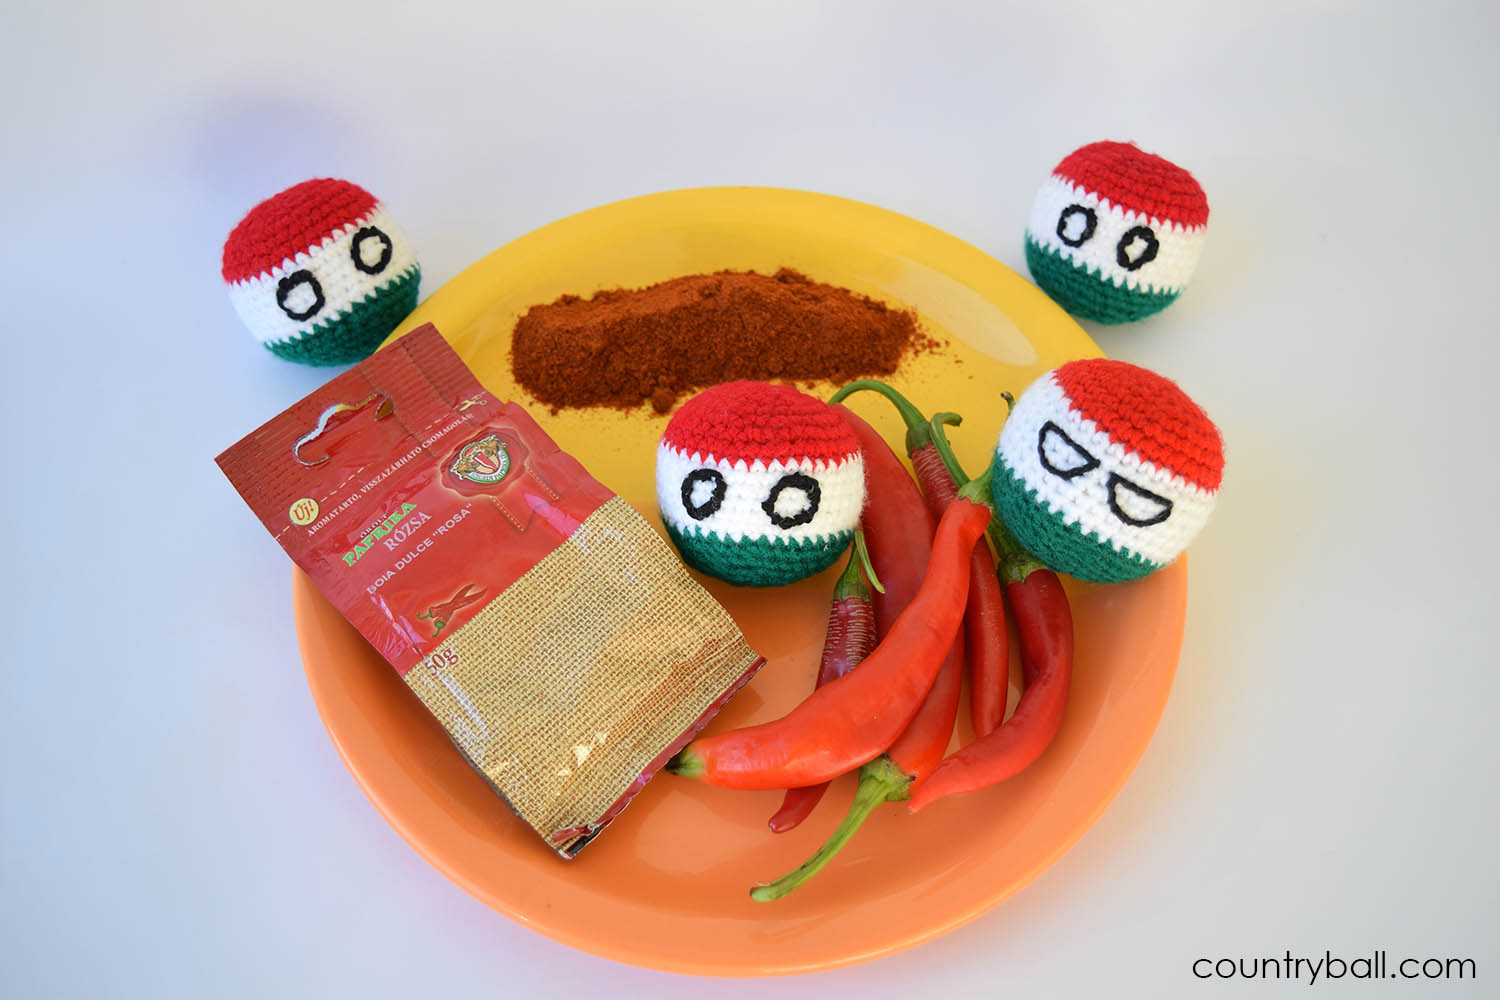 Hungaryballs and Paprika